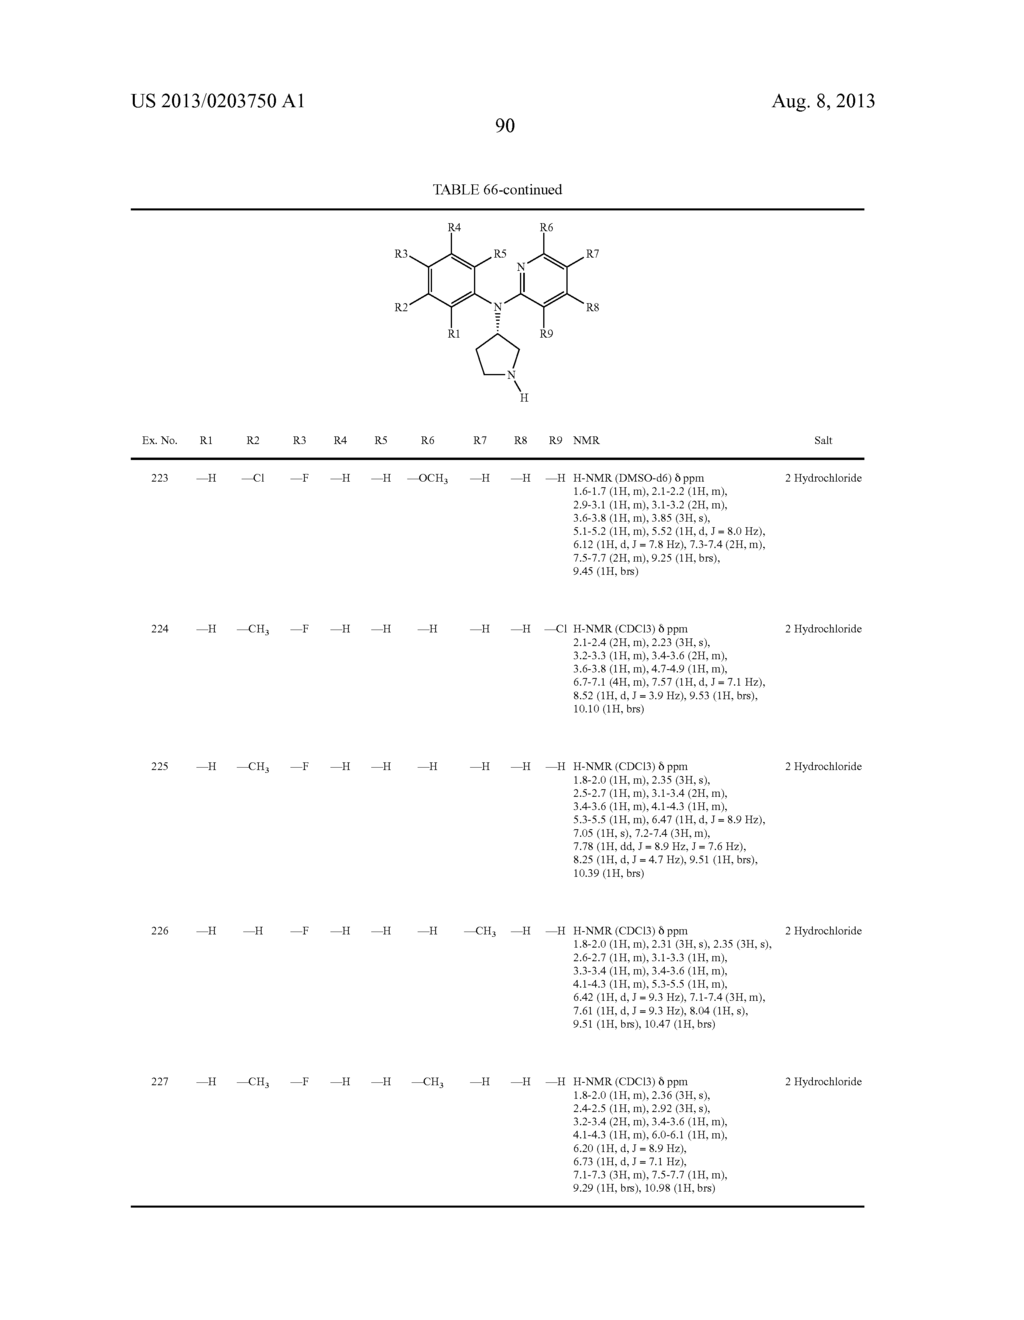 N,N-SUBSTITUTED 3-AMINOPYRROLIDINE COMPOUNDS USEFUL AS MONOAMINES REUPTAKE     INHIBITORS - diagram, schematic, and image 91